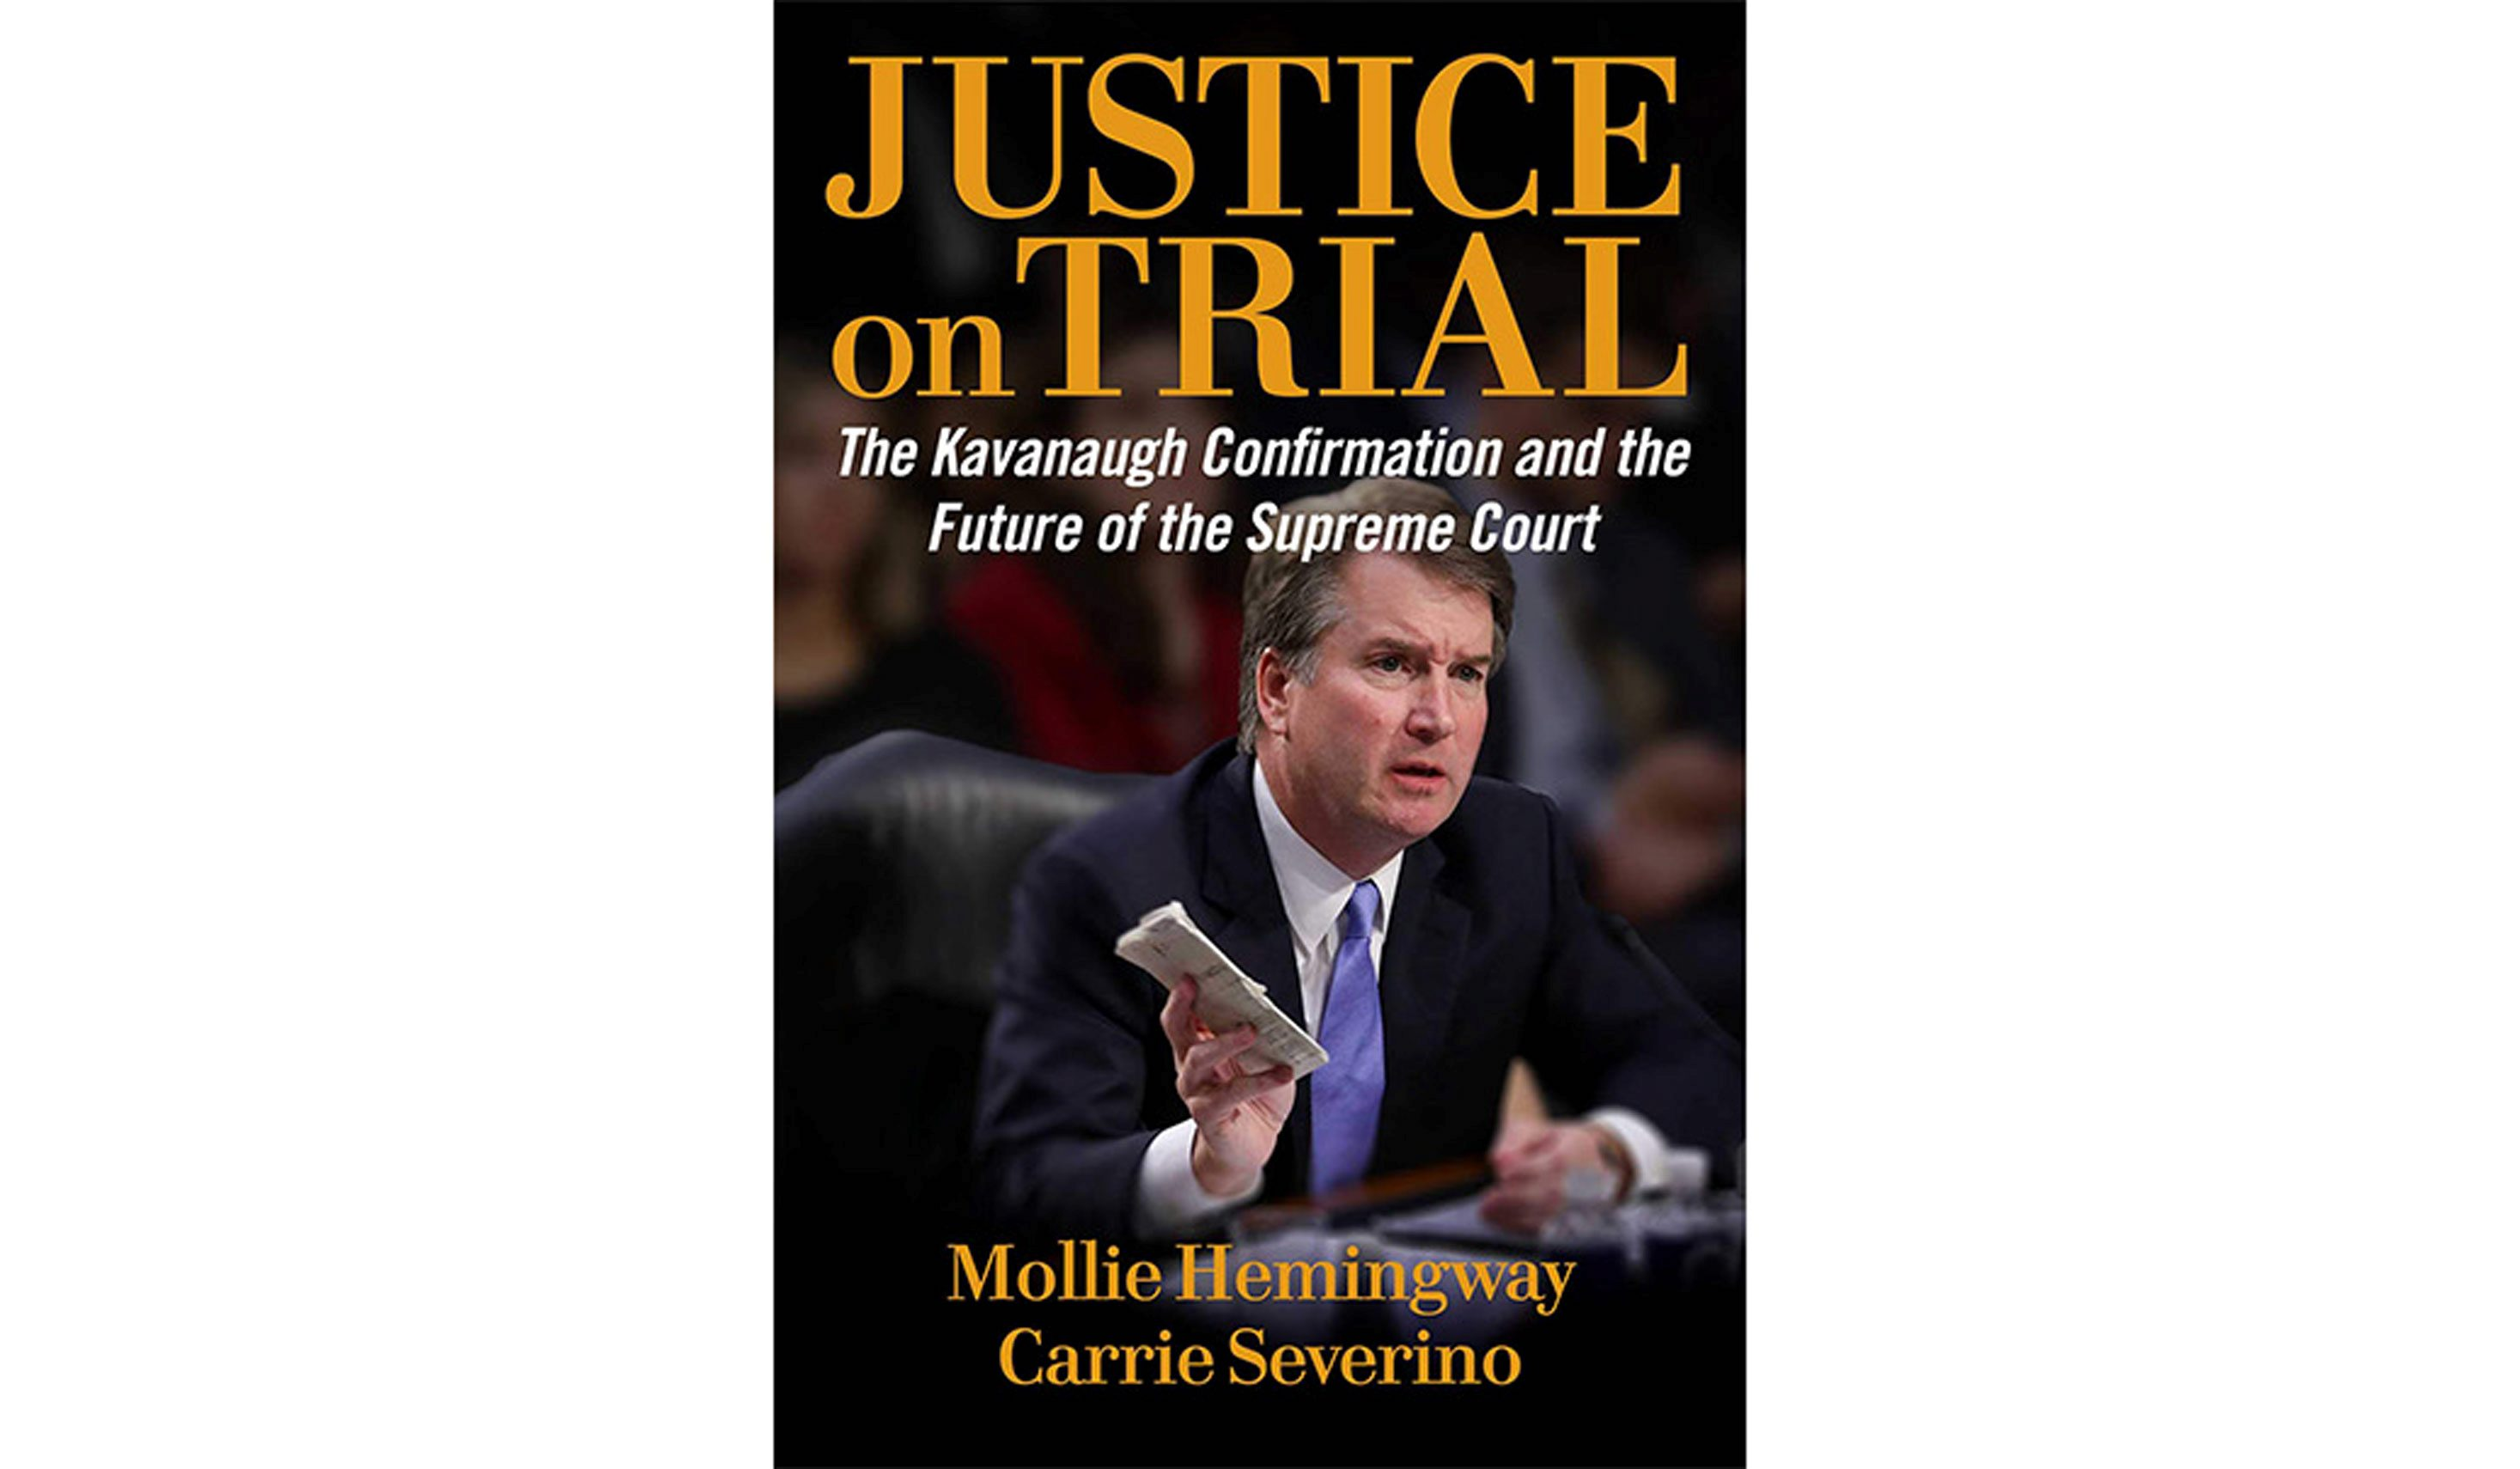 BOOK REVIEW: 'Justice on Trial' by Mollie Hemingway and Carrie Severino